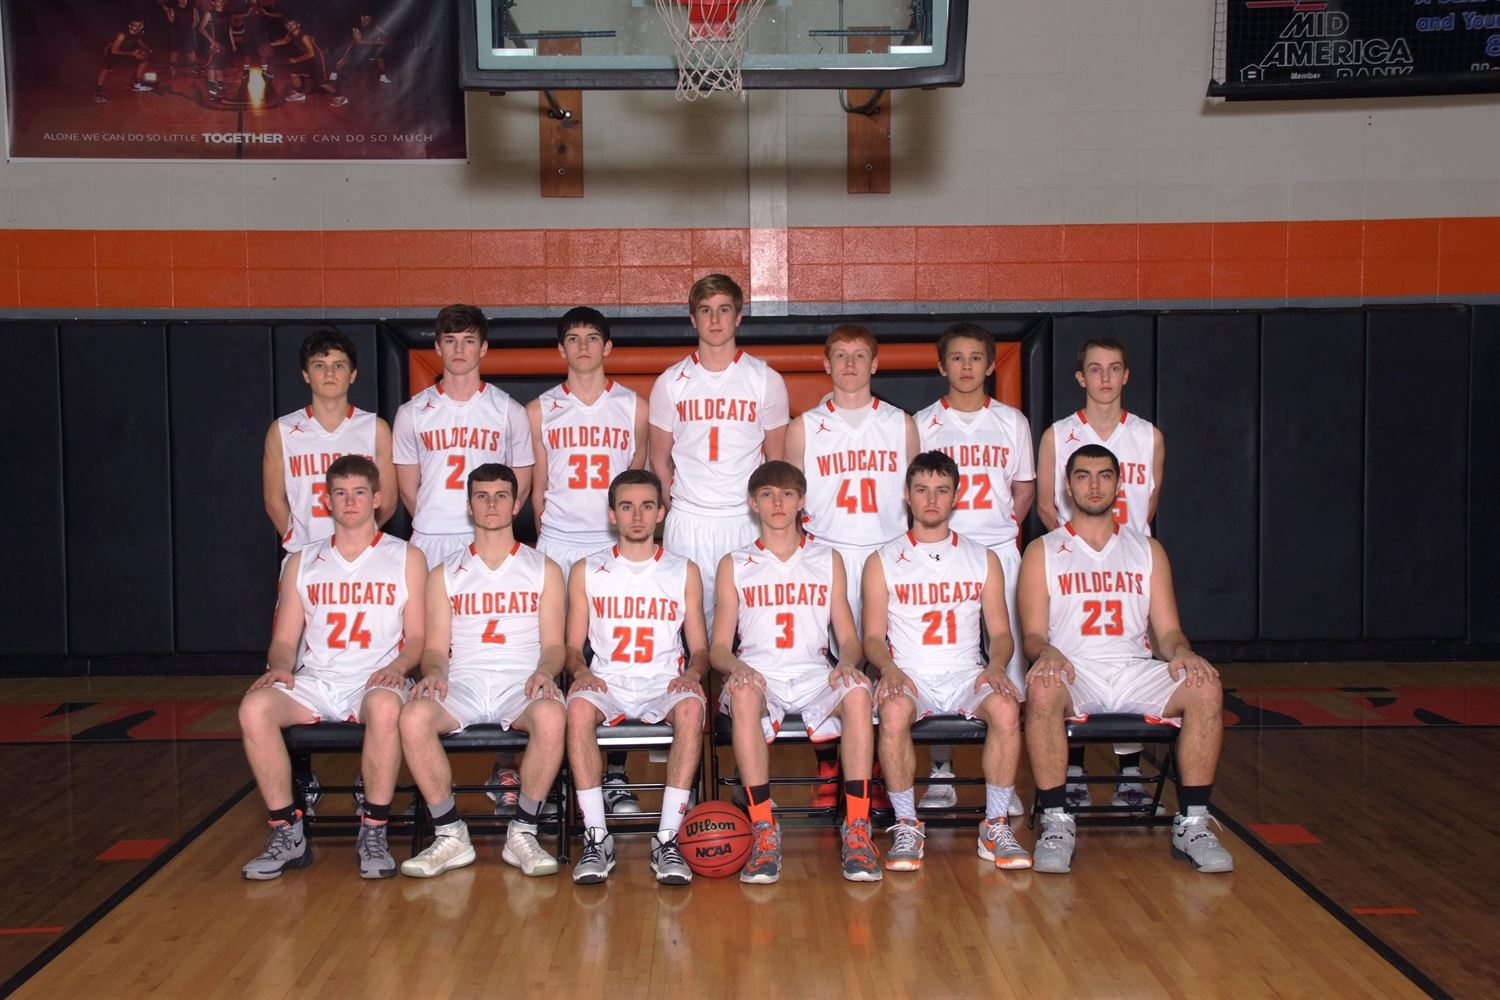 New Bloomfield High School - Boys' Varsity Basketball